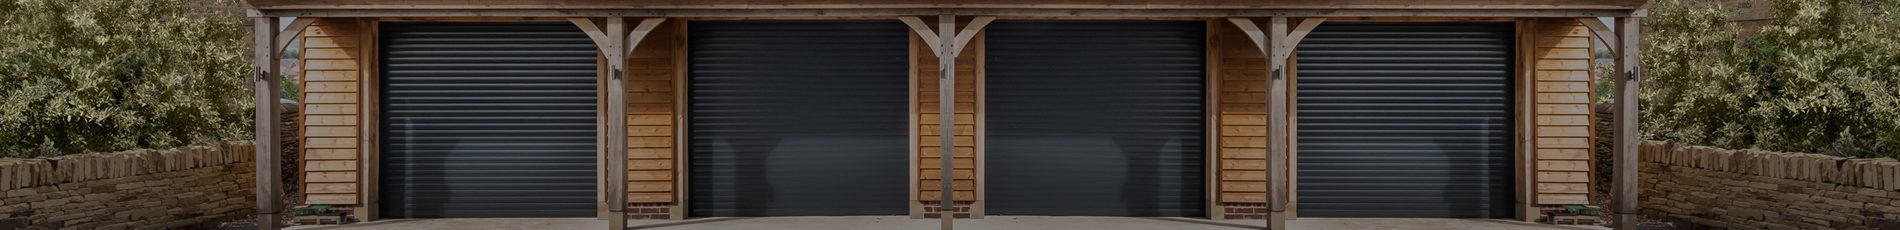 Roller Garage Doors Frome - Franchise, Installer and Stockists Opportunity